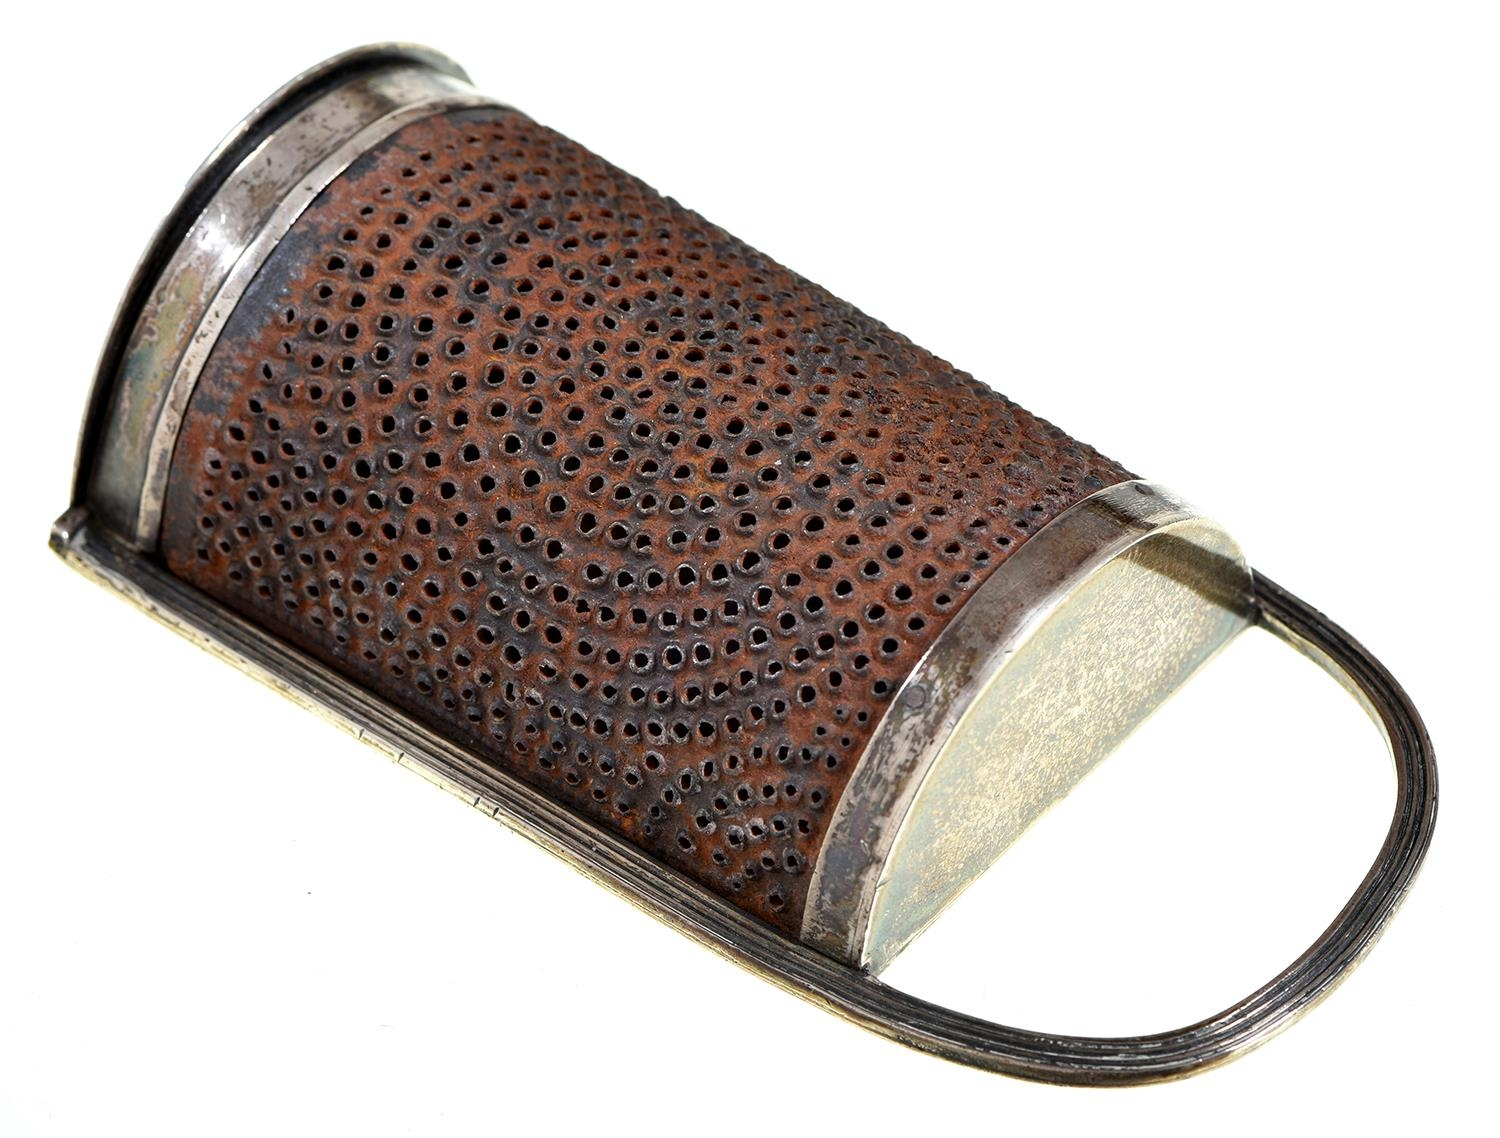 A George III silver nutmeg grater, with reeded frame and steel rasp, integral hinge, 10.7cm h, by